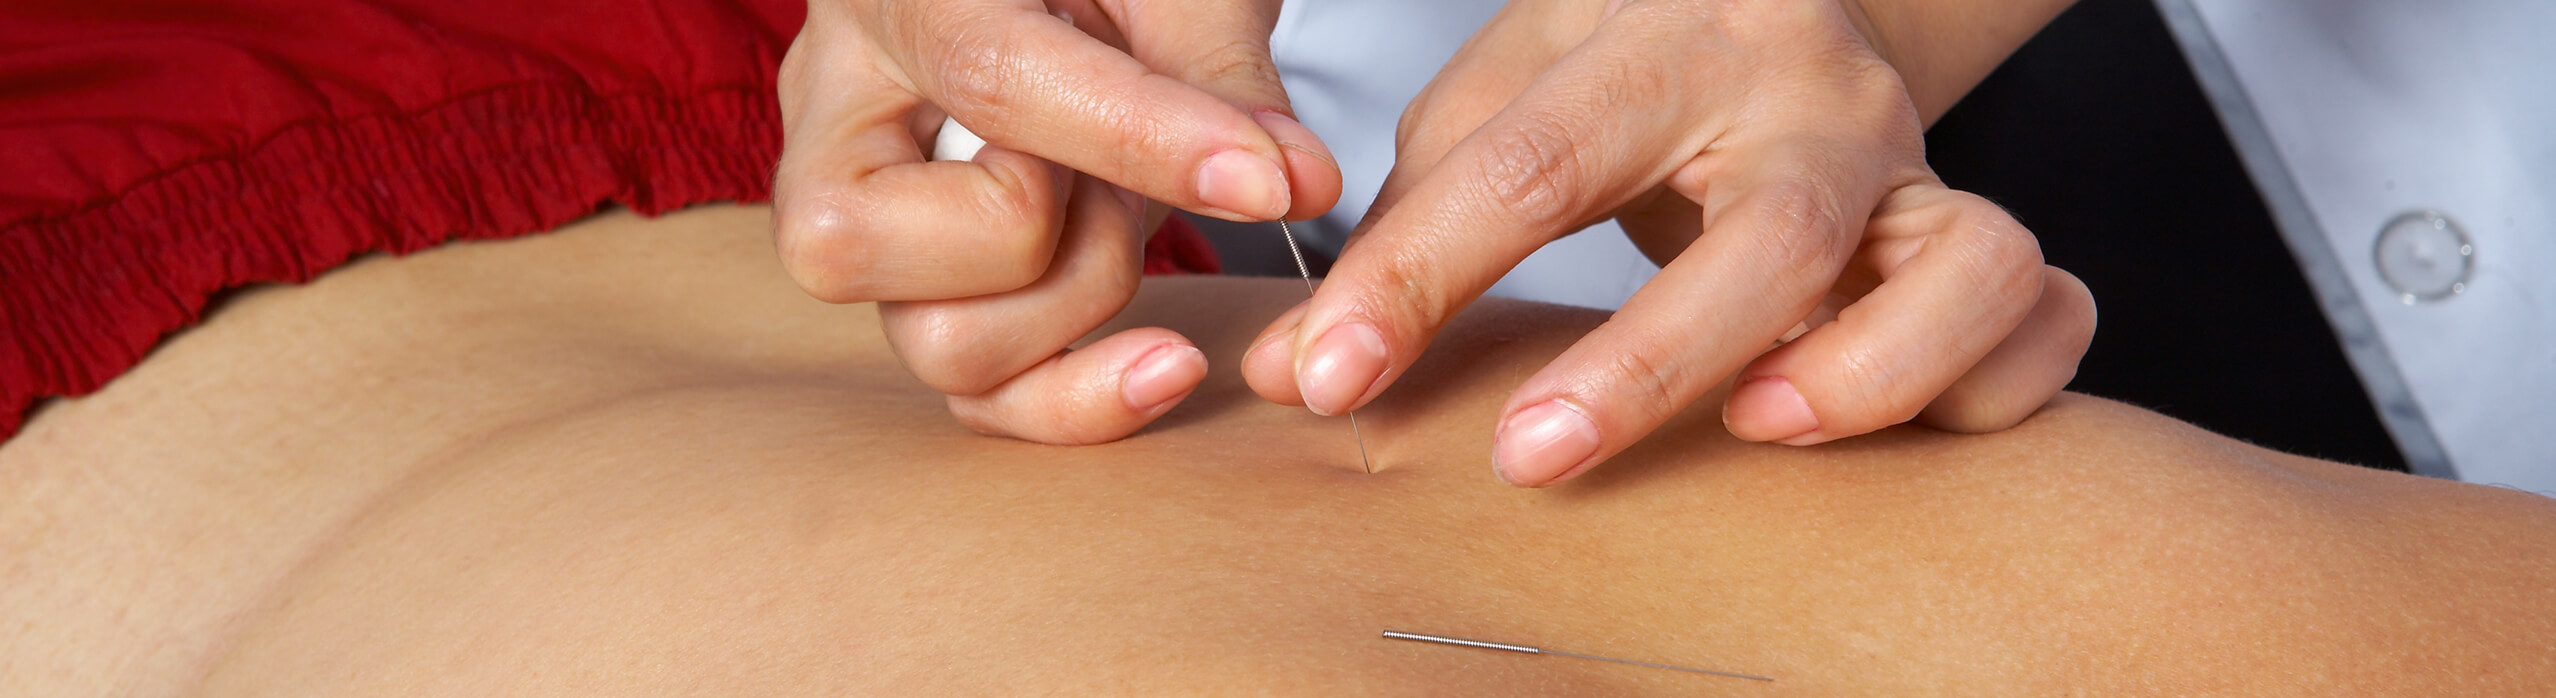 Functional Dry Needling El Paso, Horizon City, TX & Las Cruces, NM